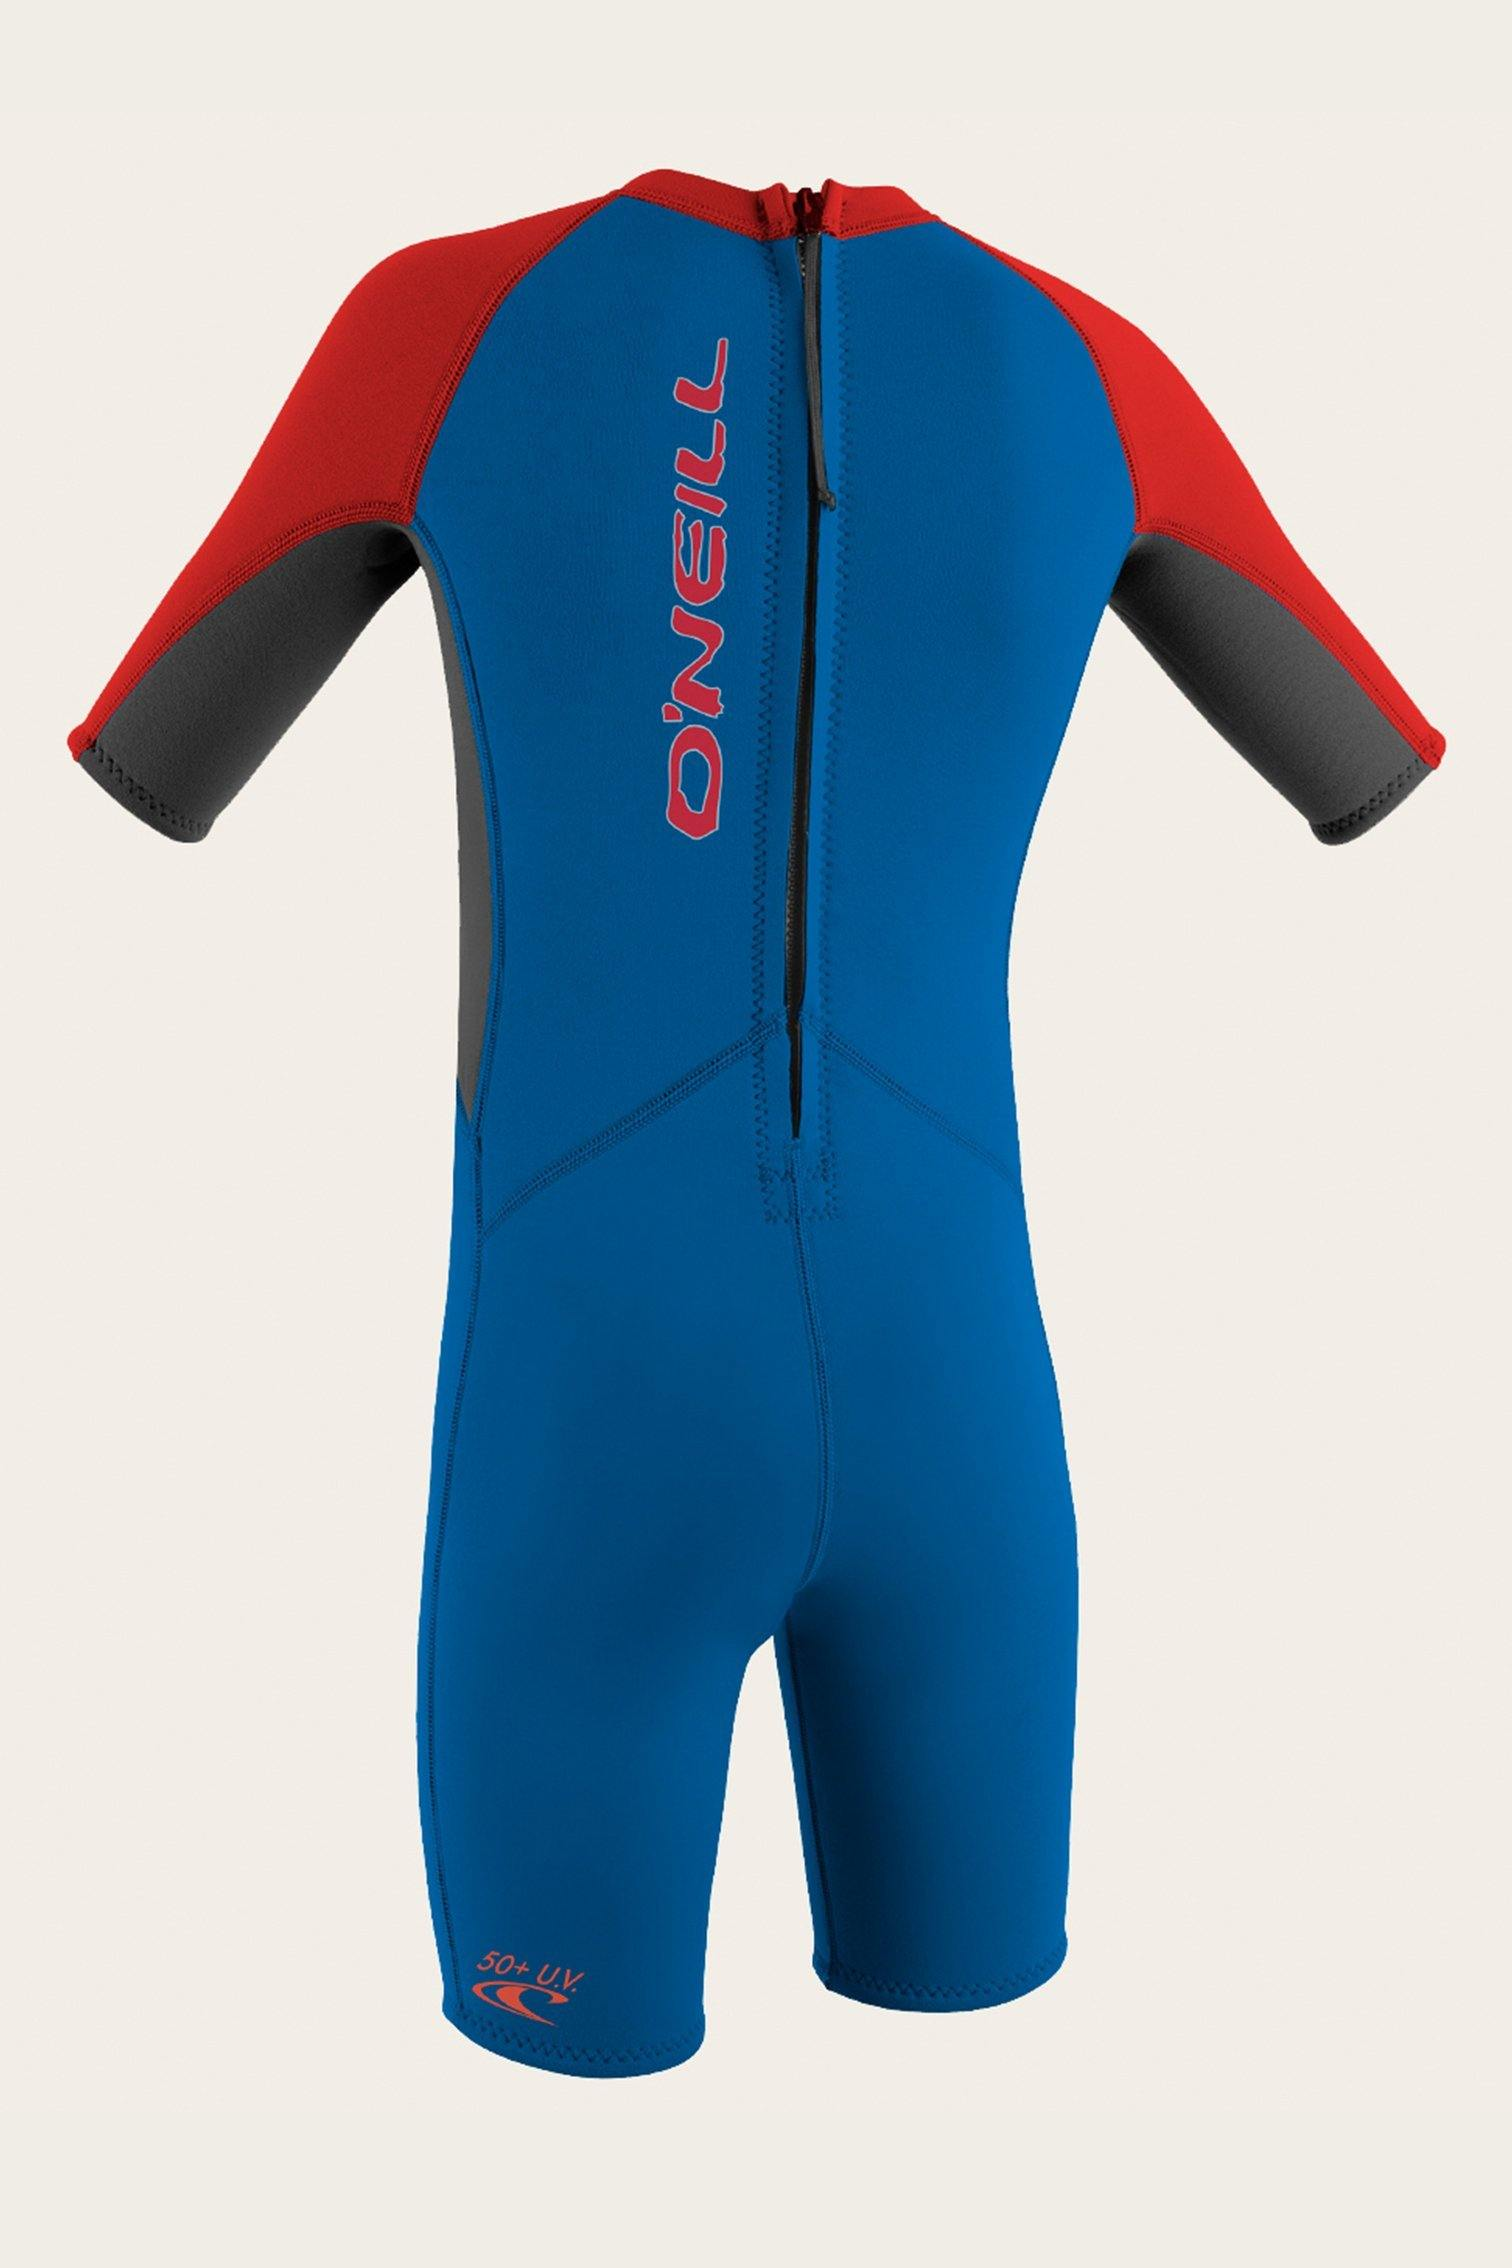 O'Neill Reactor II 2mm Toddler Spring Wetsuit - Colors Vary - Urban Surf